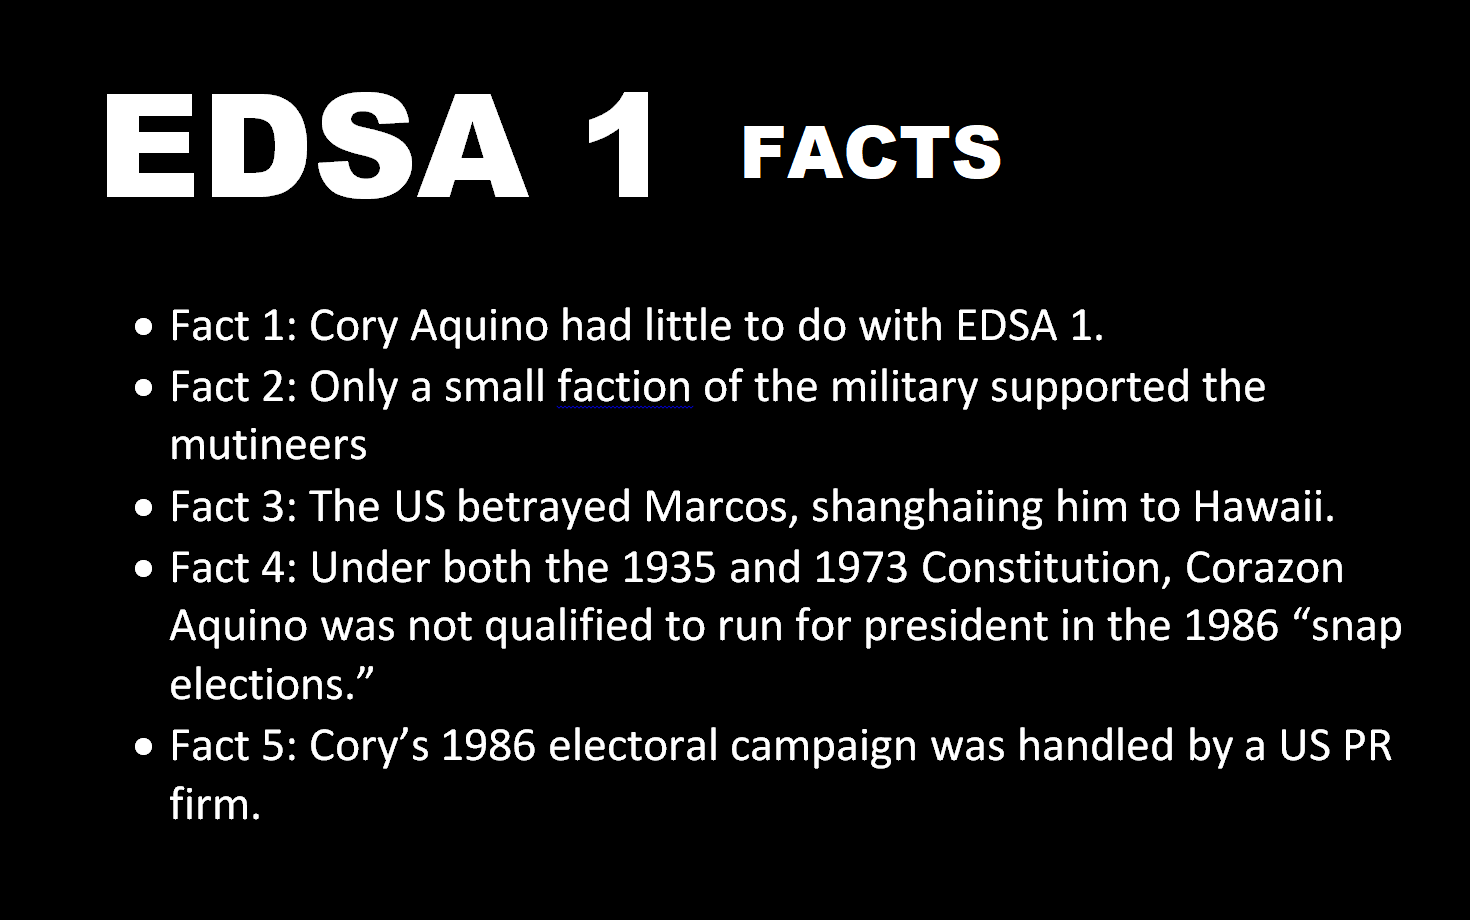 EDSA FACTS: CORY AQUINO was not Qualified to run for President under the 1935 and 1973 Constitution / USA Funded Cory